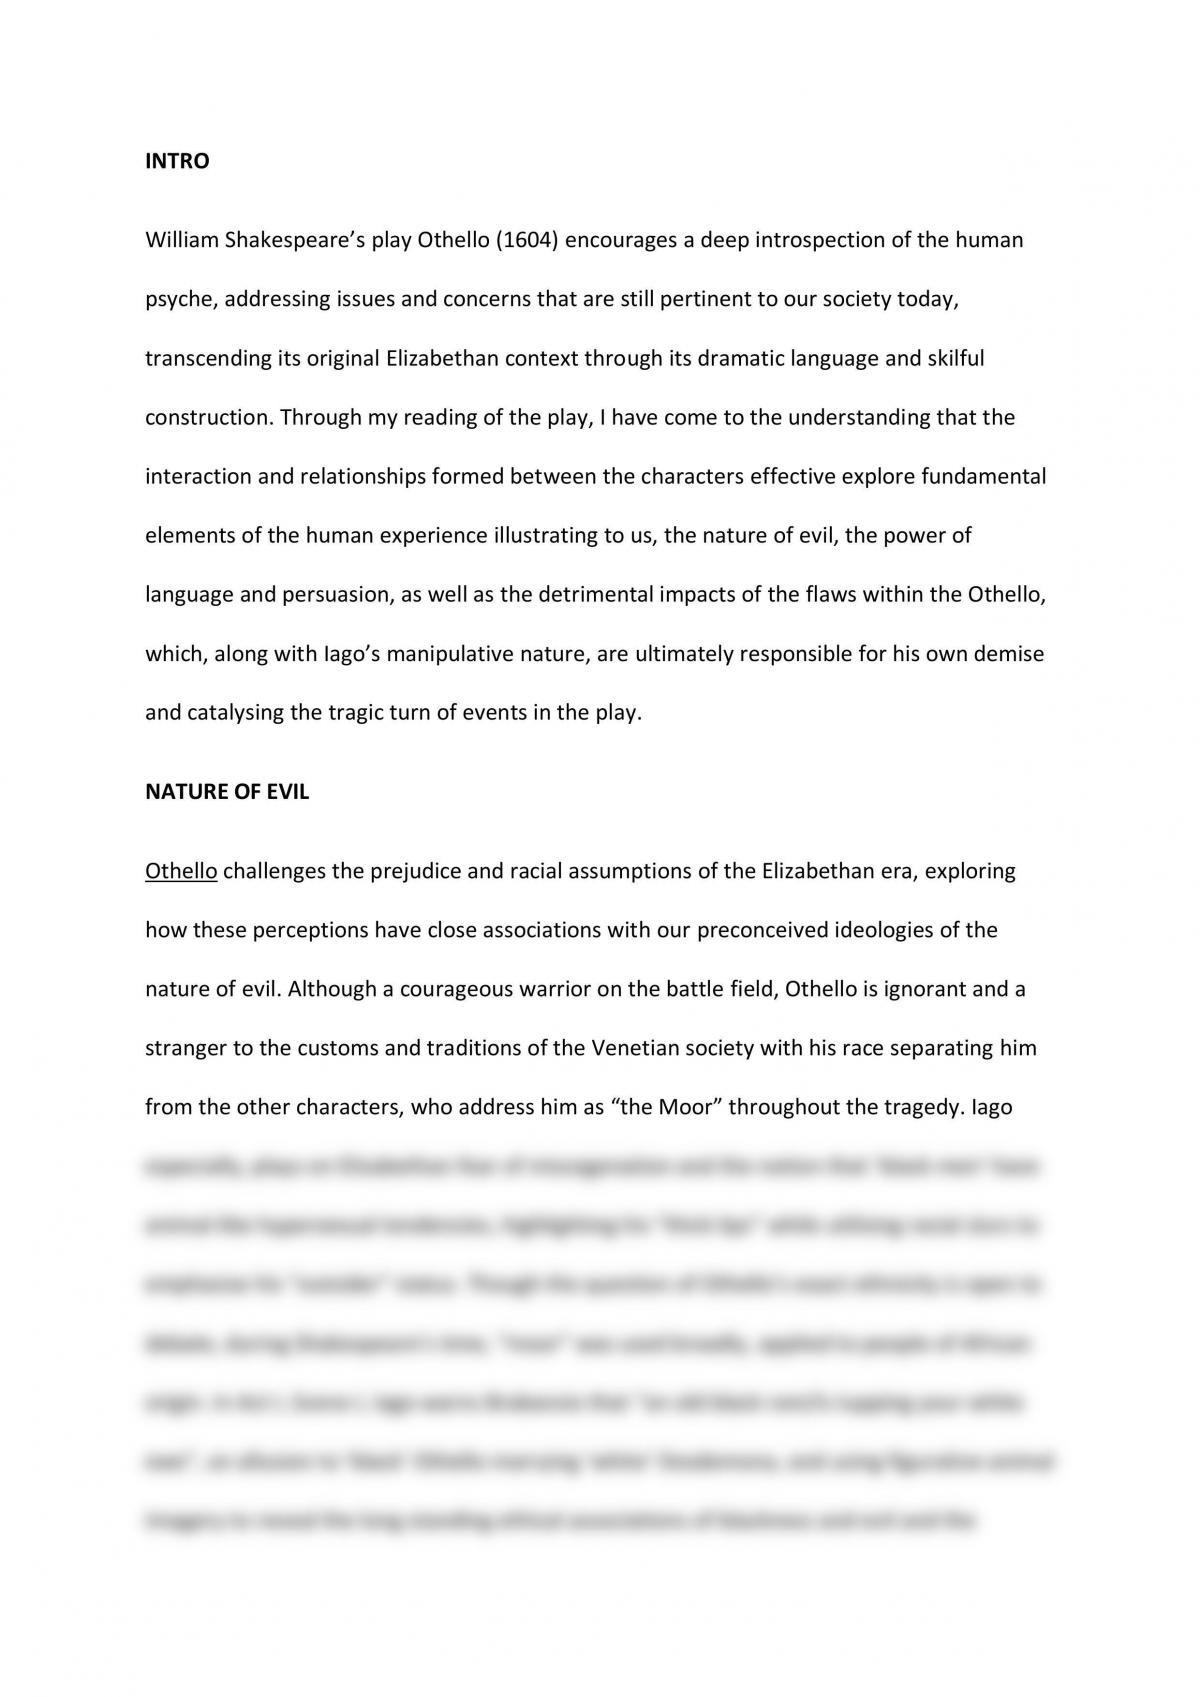 Essay on Othello - Page 1